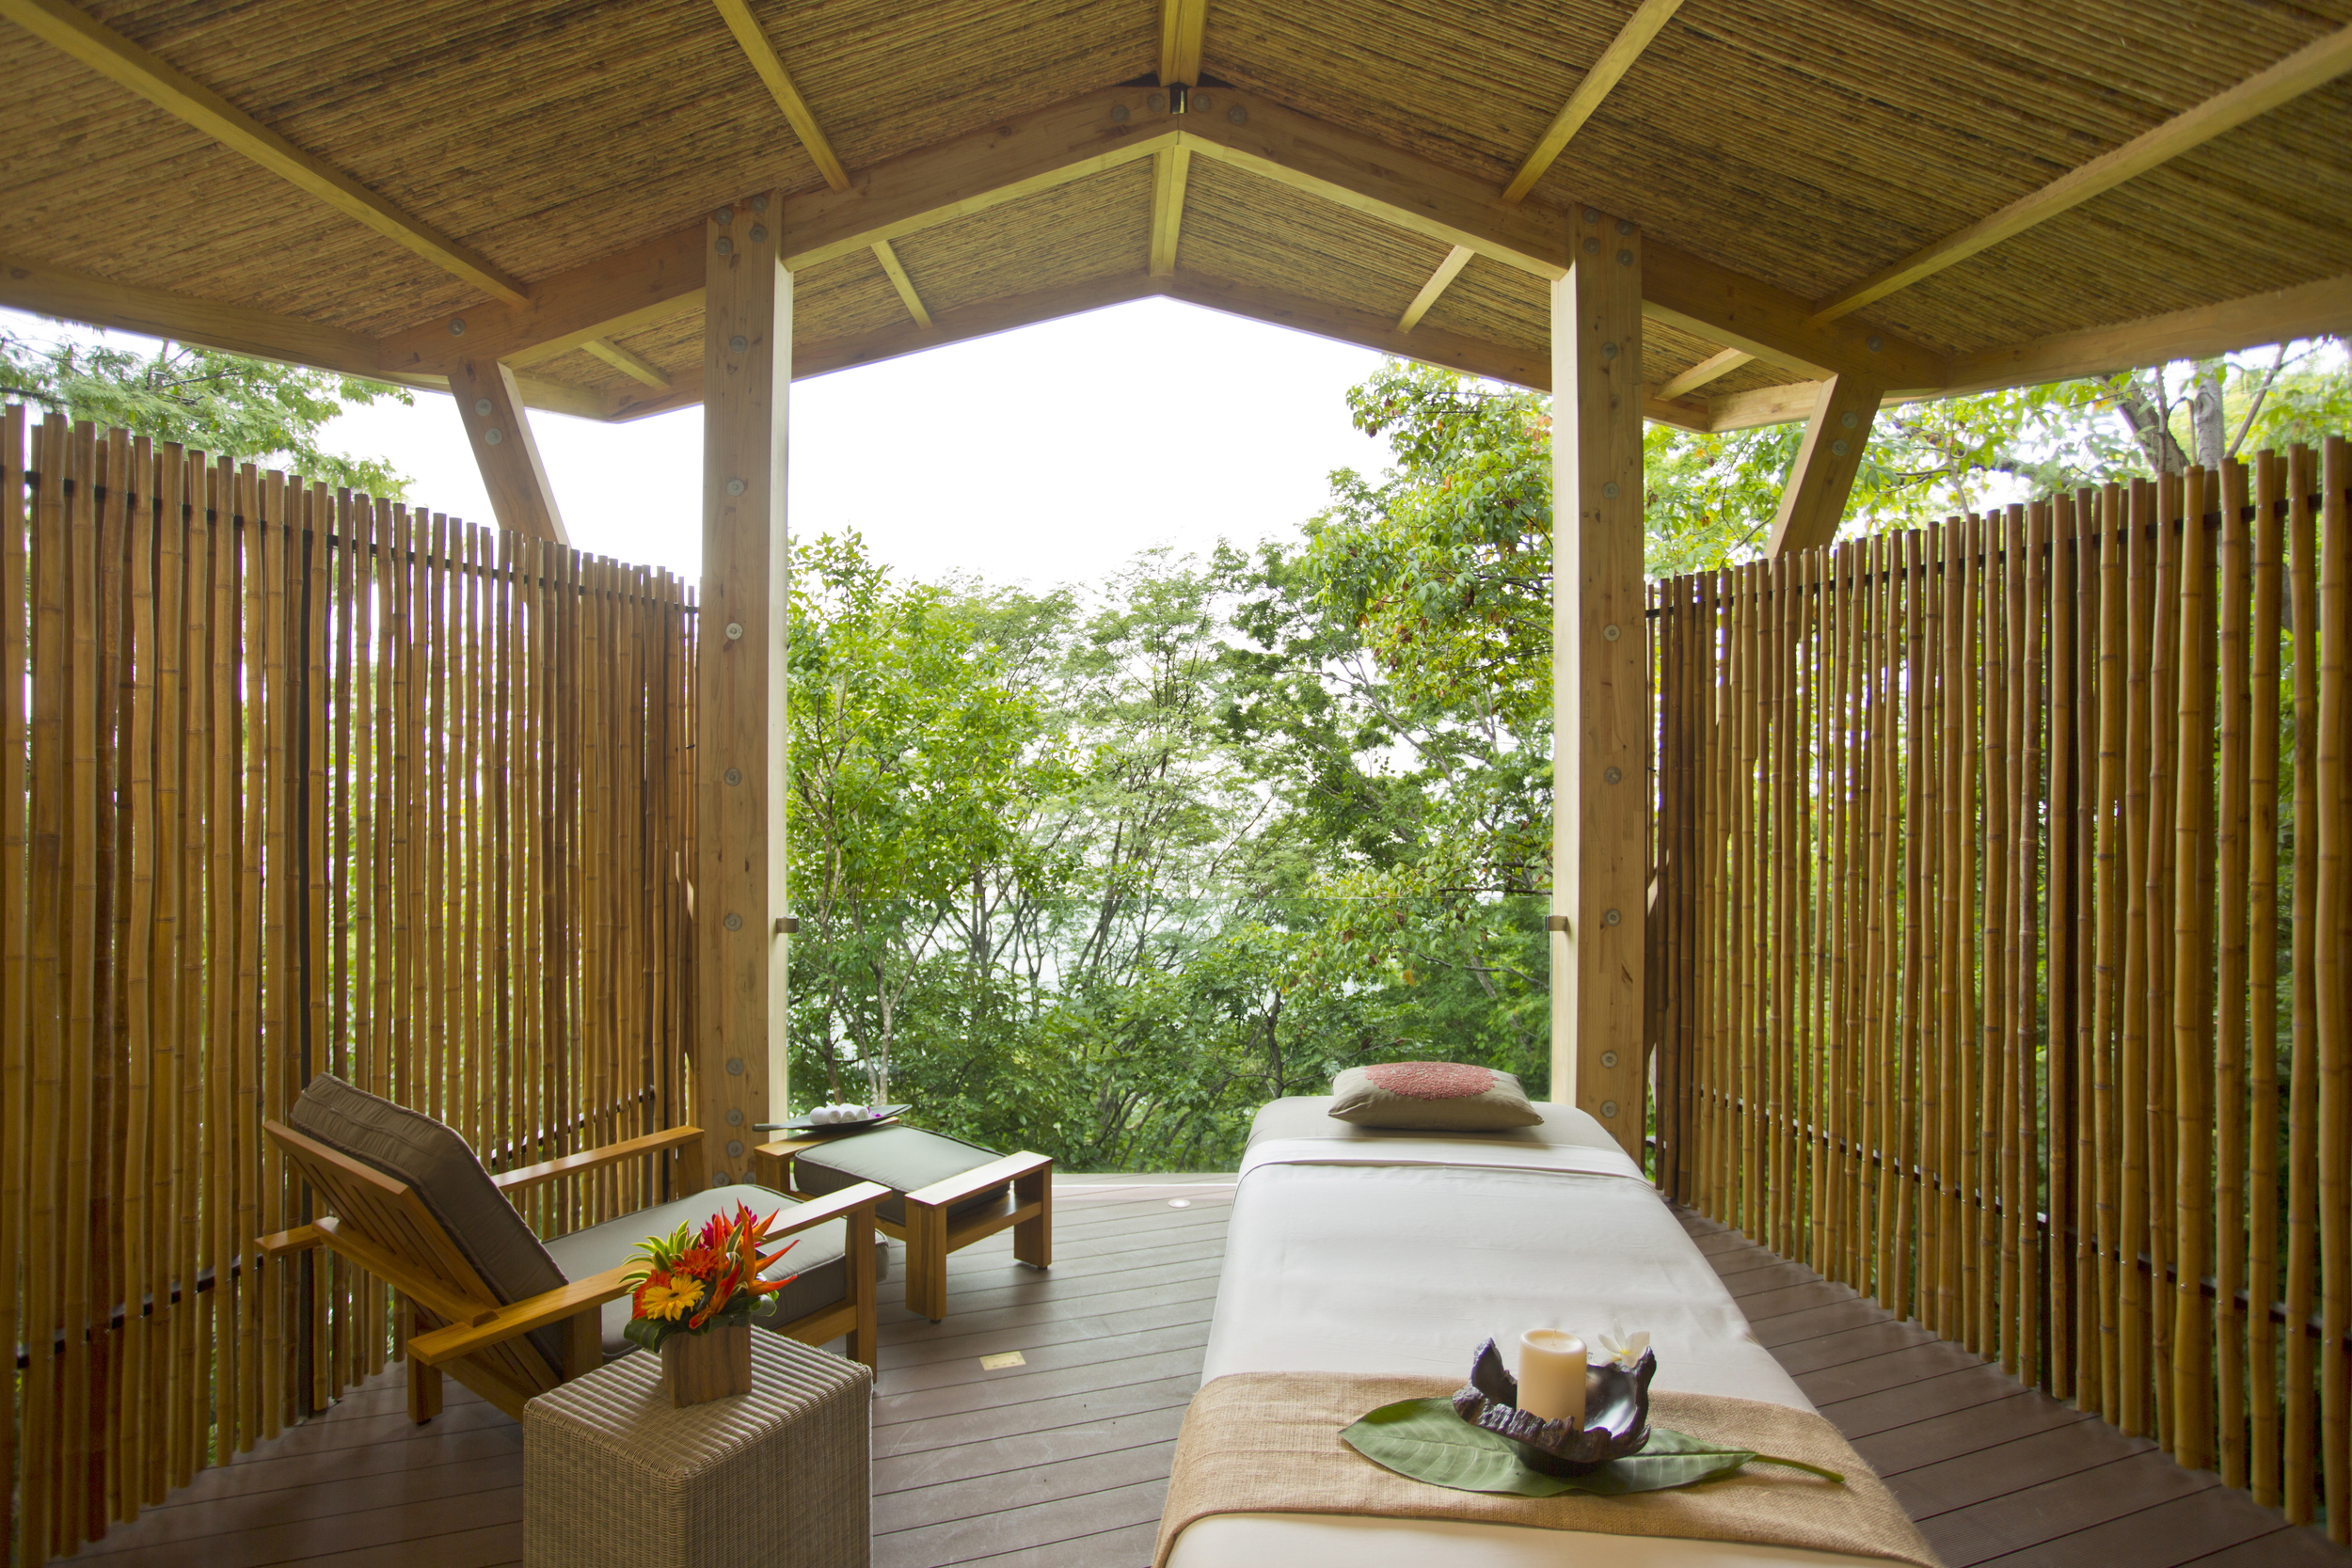 South_America_Costa_Rica_Andaz_Terrace1.jpg